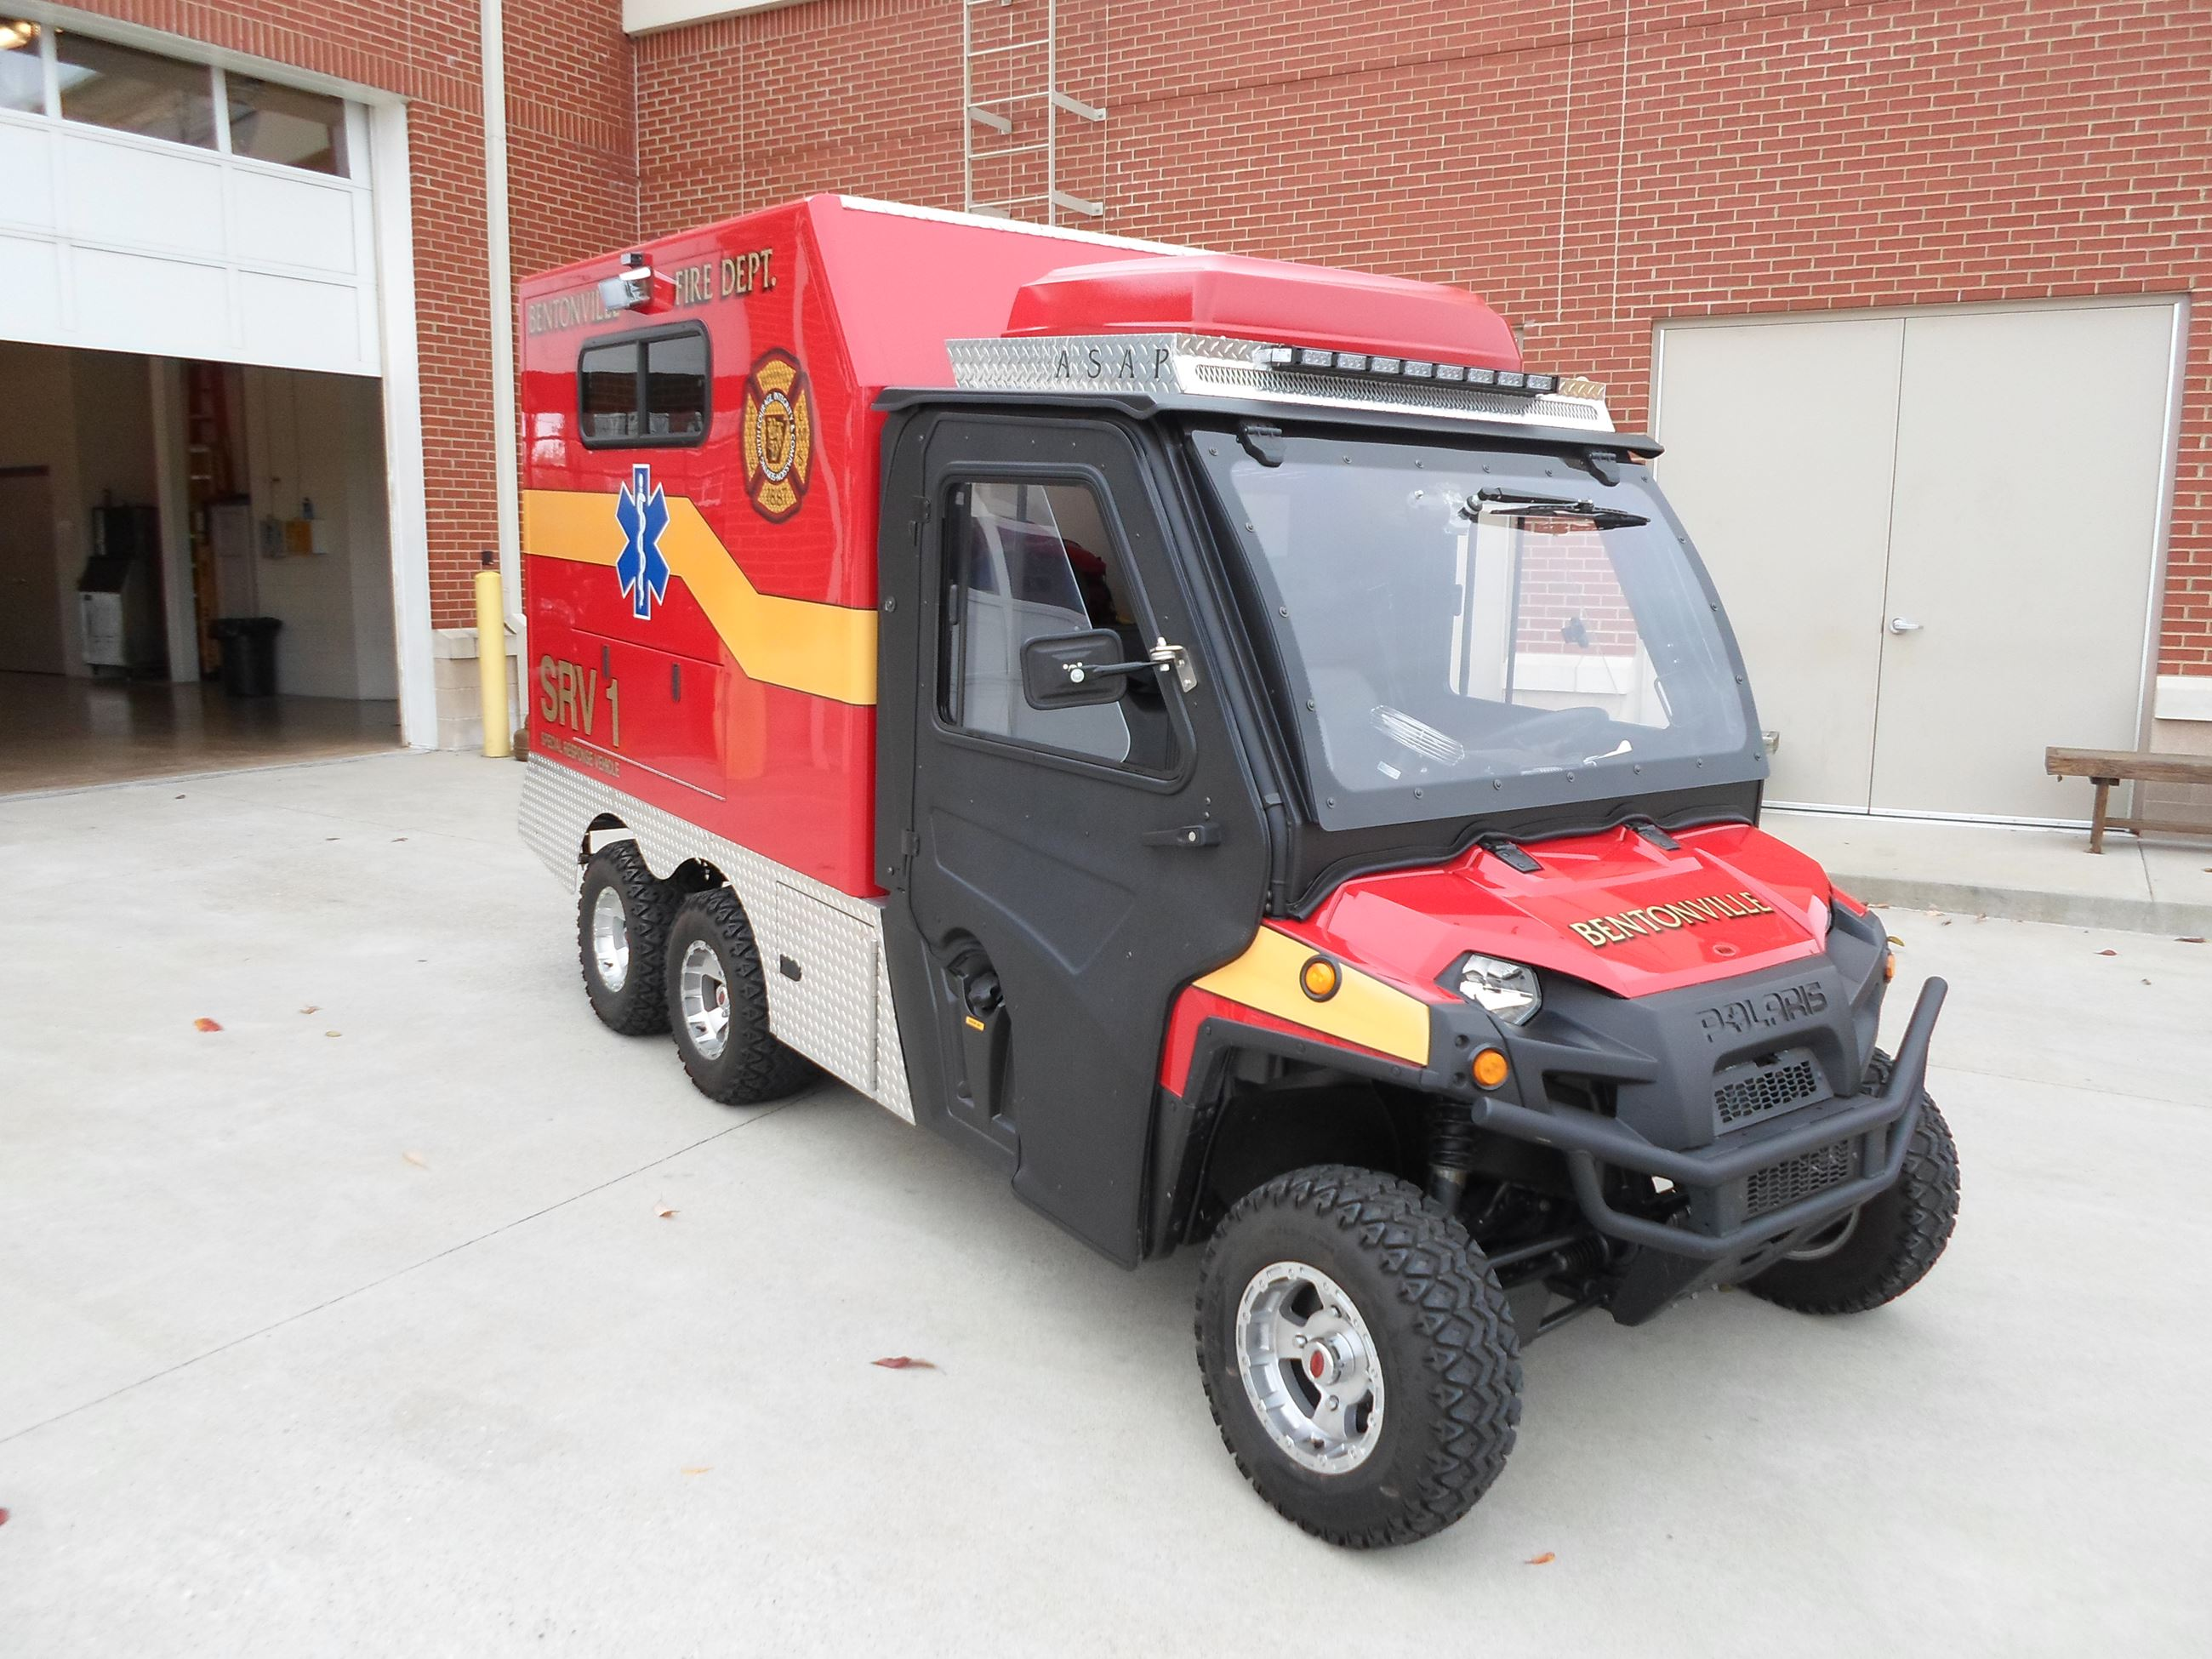 SRV-1 Black and red ATV type ambulance